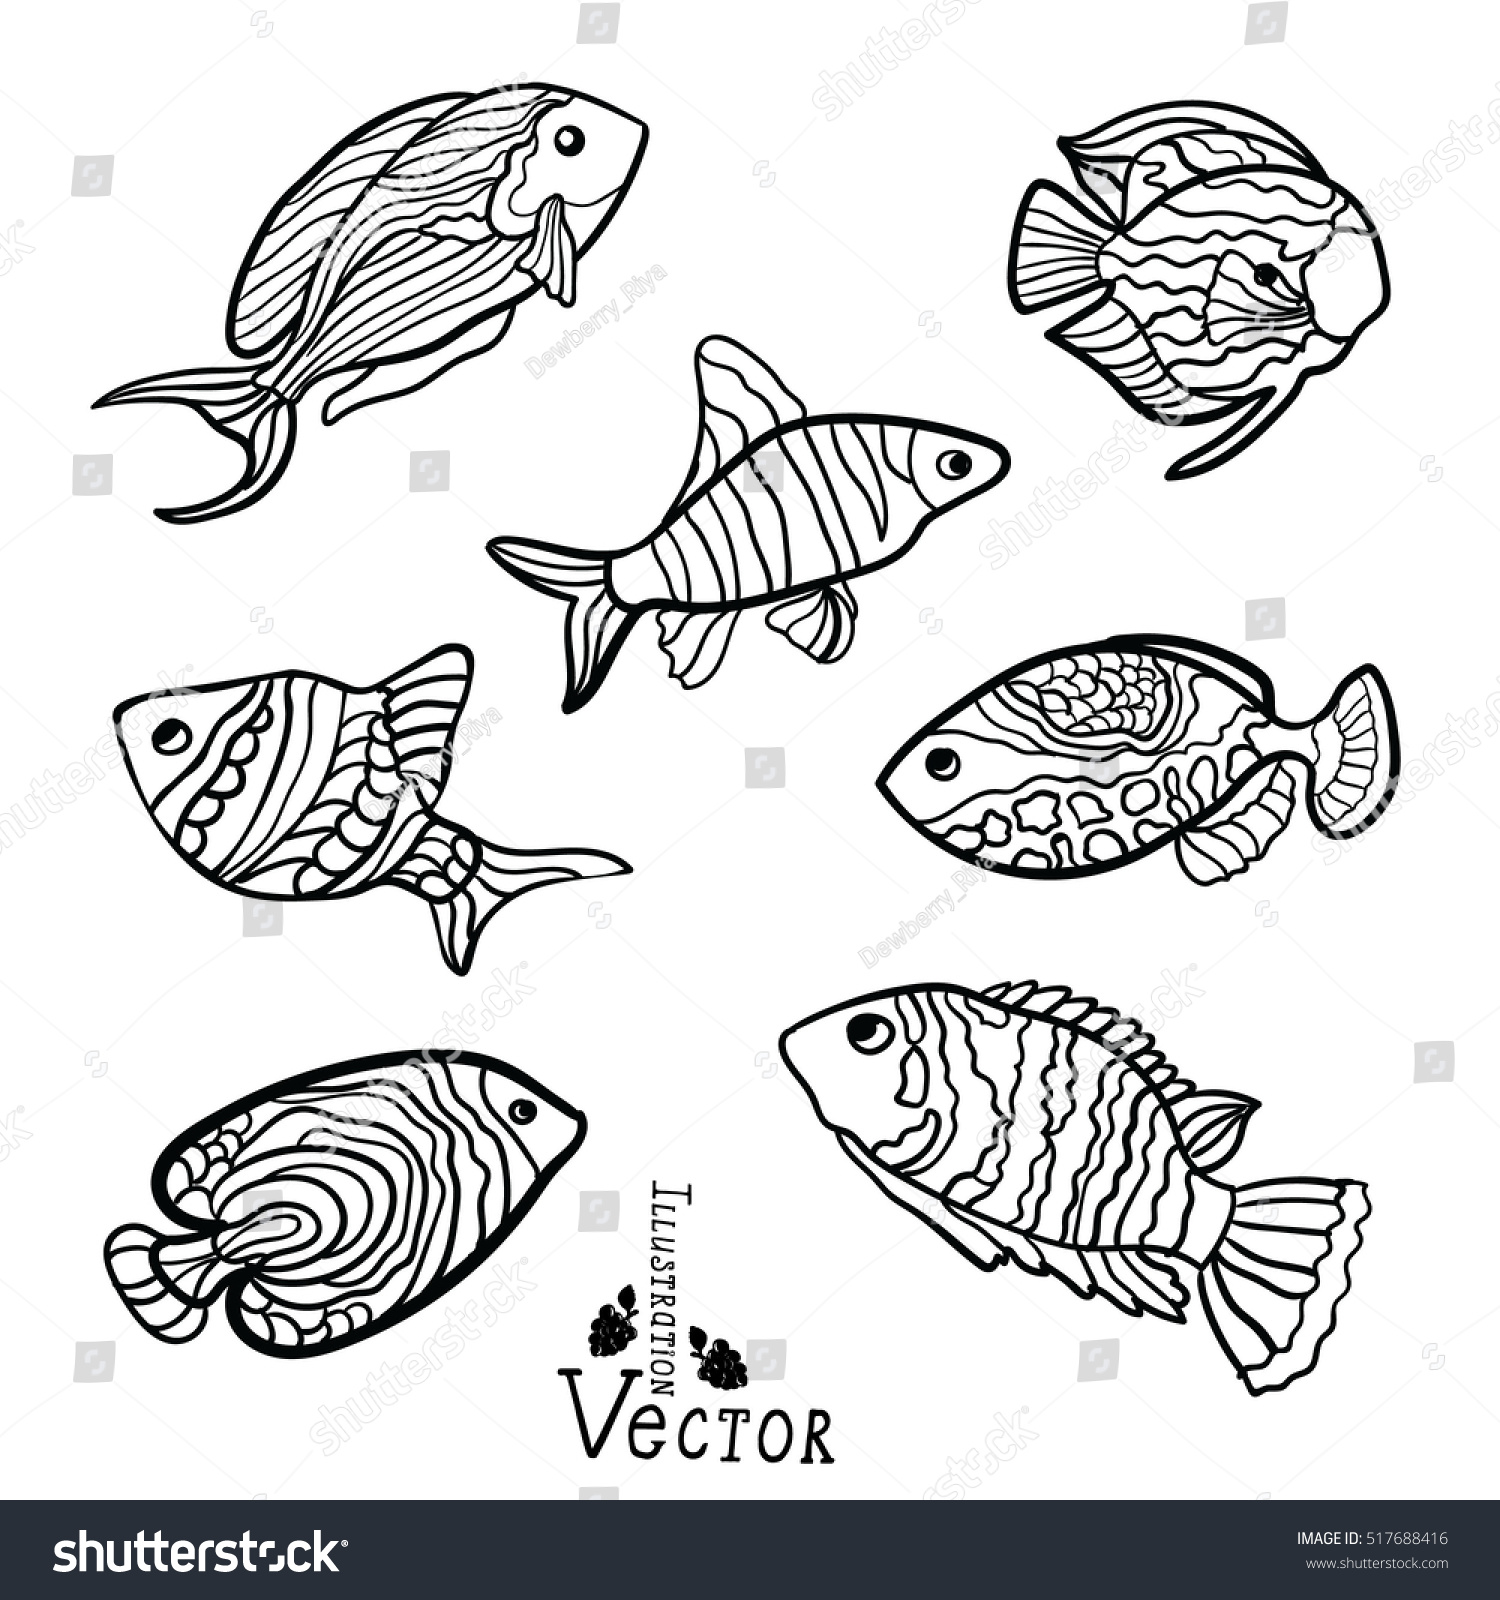 stylized fishes aquarium fish ornamental fish stock vector